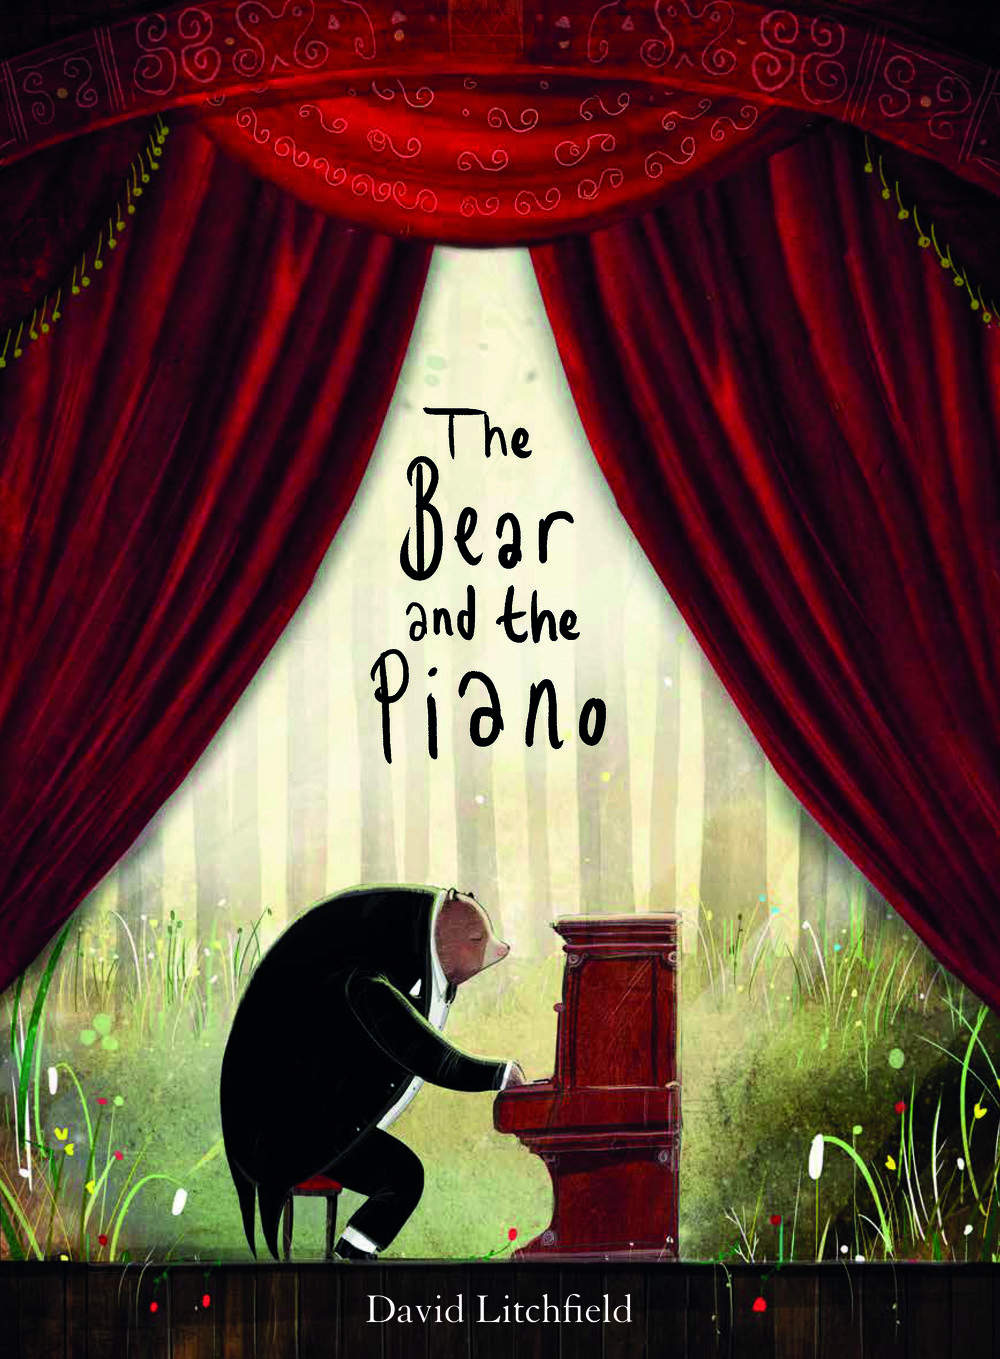 Grandads, Bears and Pianos 1.30pm